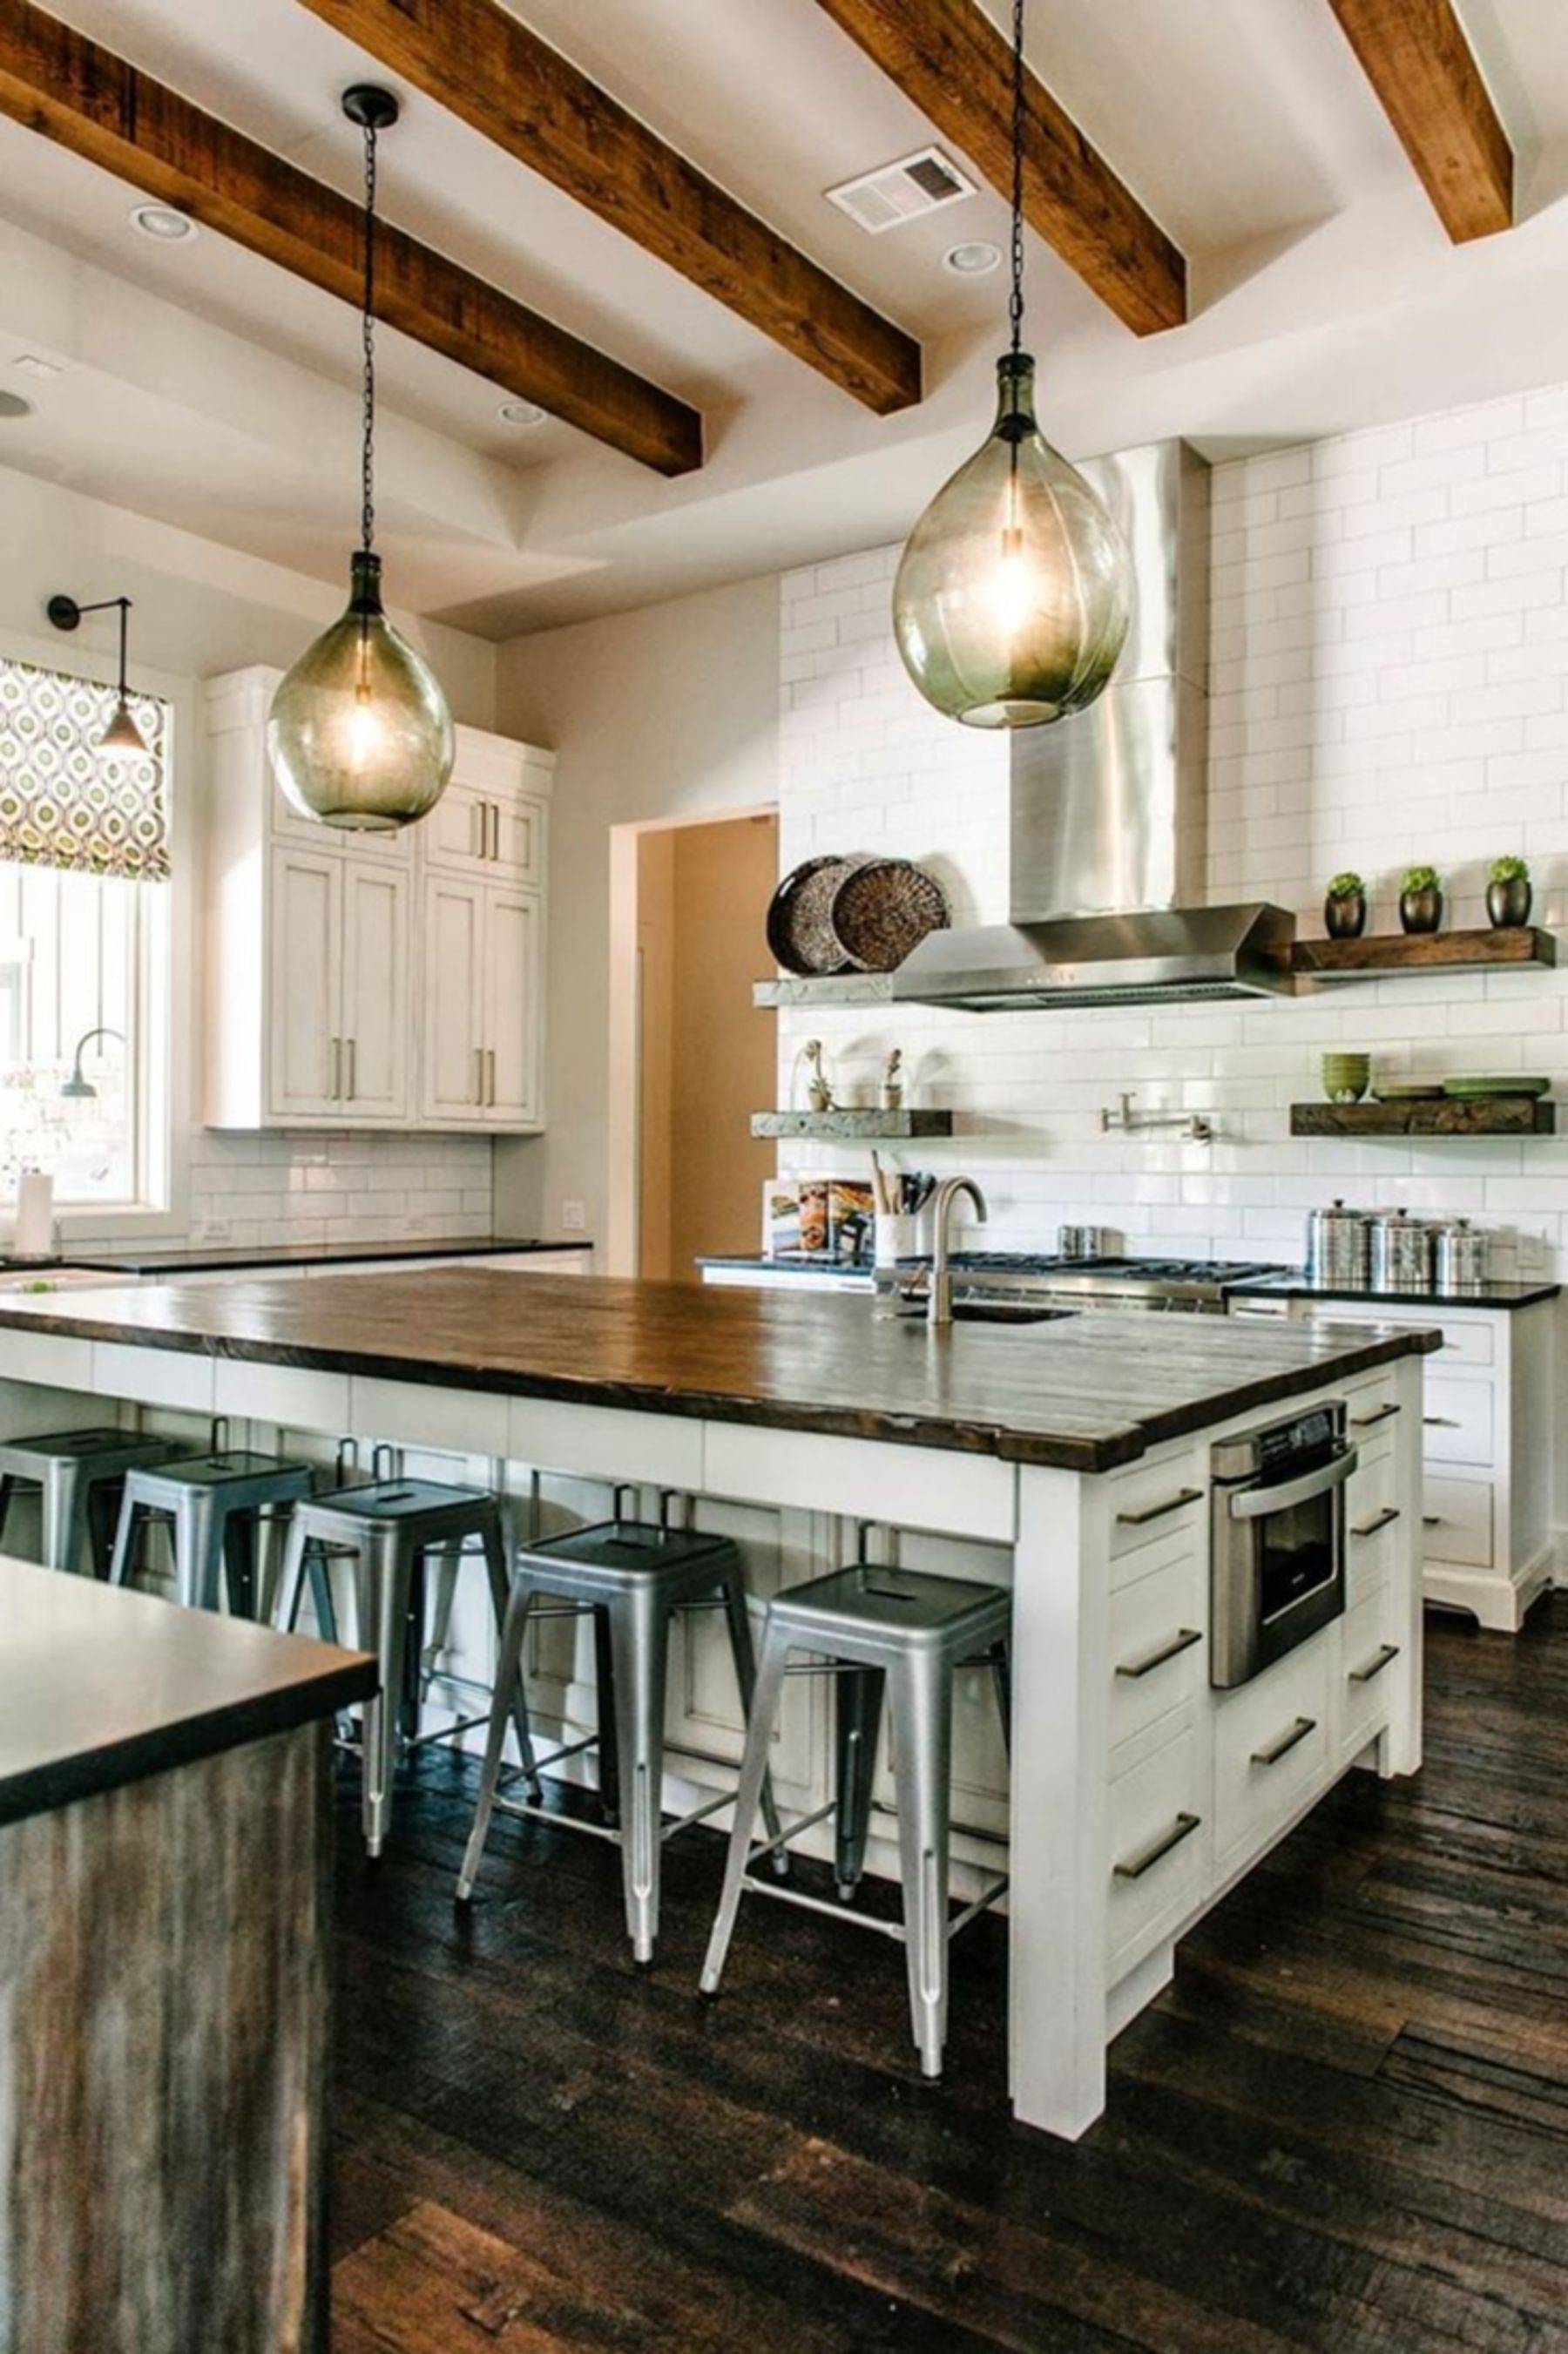 Kitchen Ceiling Fans Cool And Classic Design Of Ceiling Fans In 2020 Rustic Modern Kitchen Farmhouse Kitchen Remodel Modern Farmhouse Kitchens